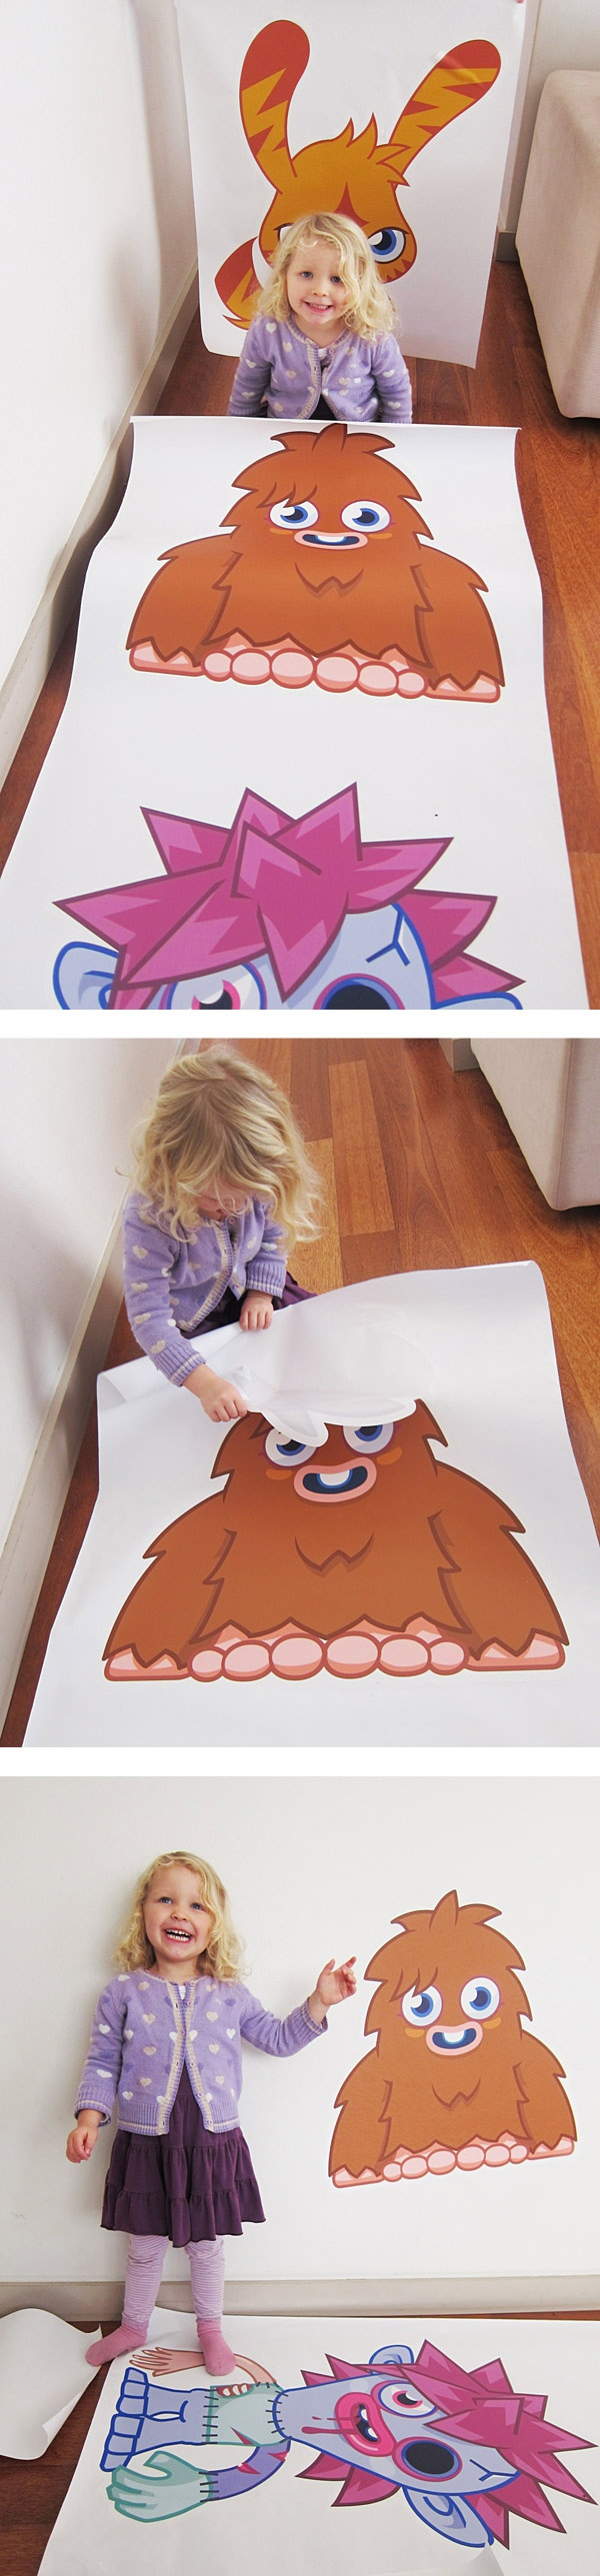 Moshi Monsters + Moshlings Premium Wall Graphics from